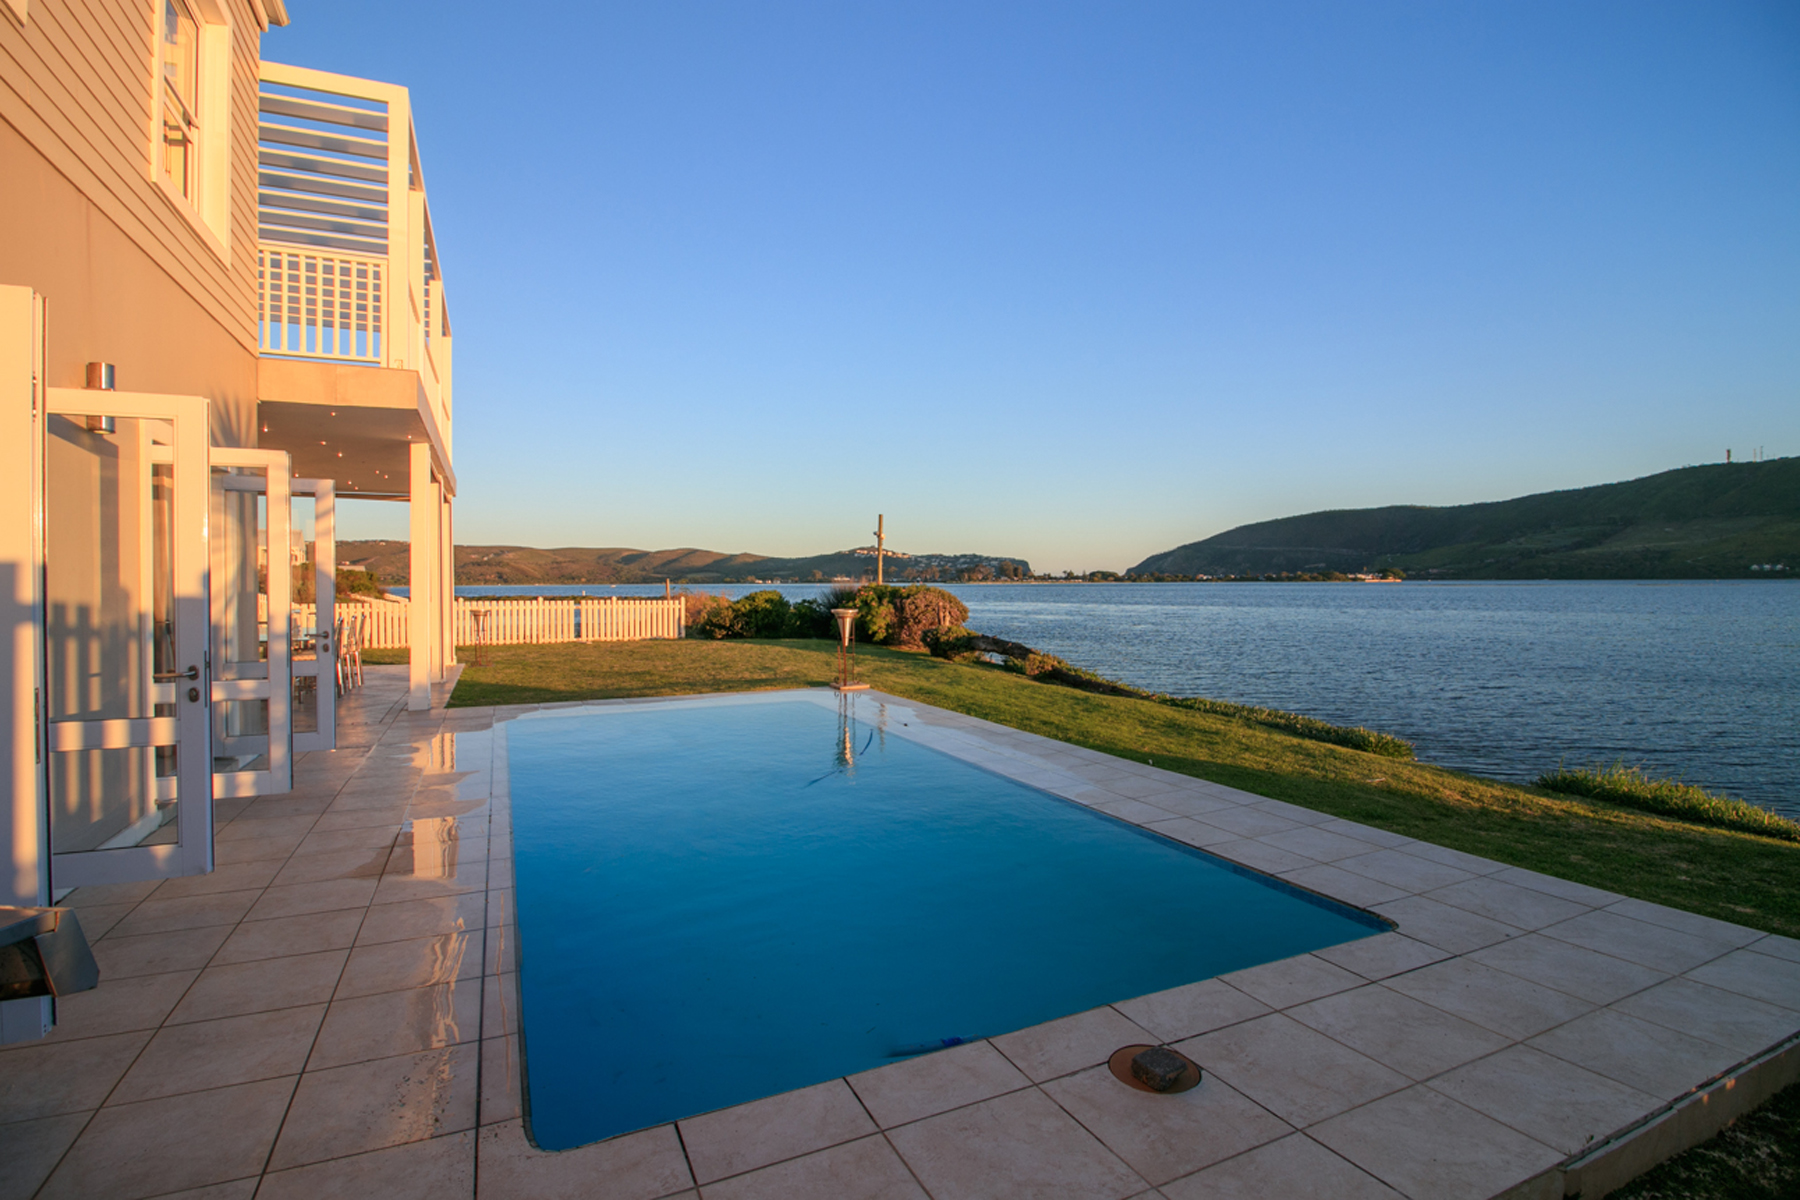 Property for Sale at Thesen Island Knysna, Western Cape 6571 South Africa